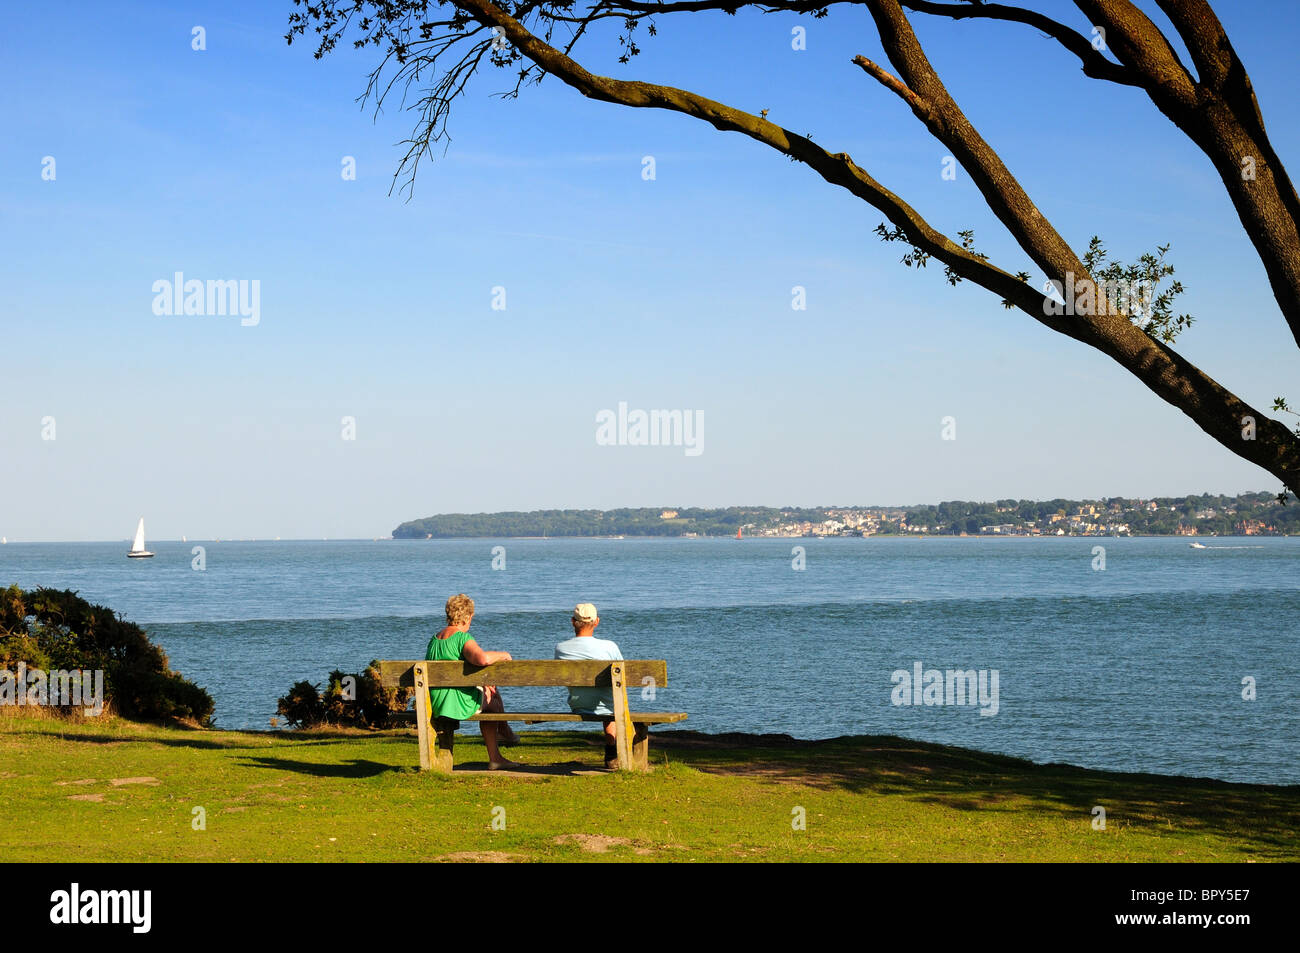 Two people sitting on bench looking at the Solent and the Isle of Wight - Stock Image